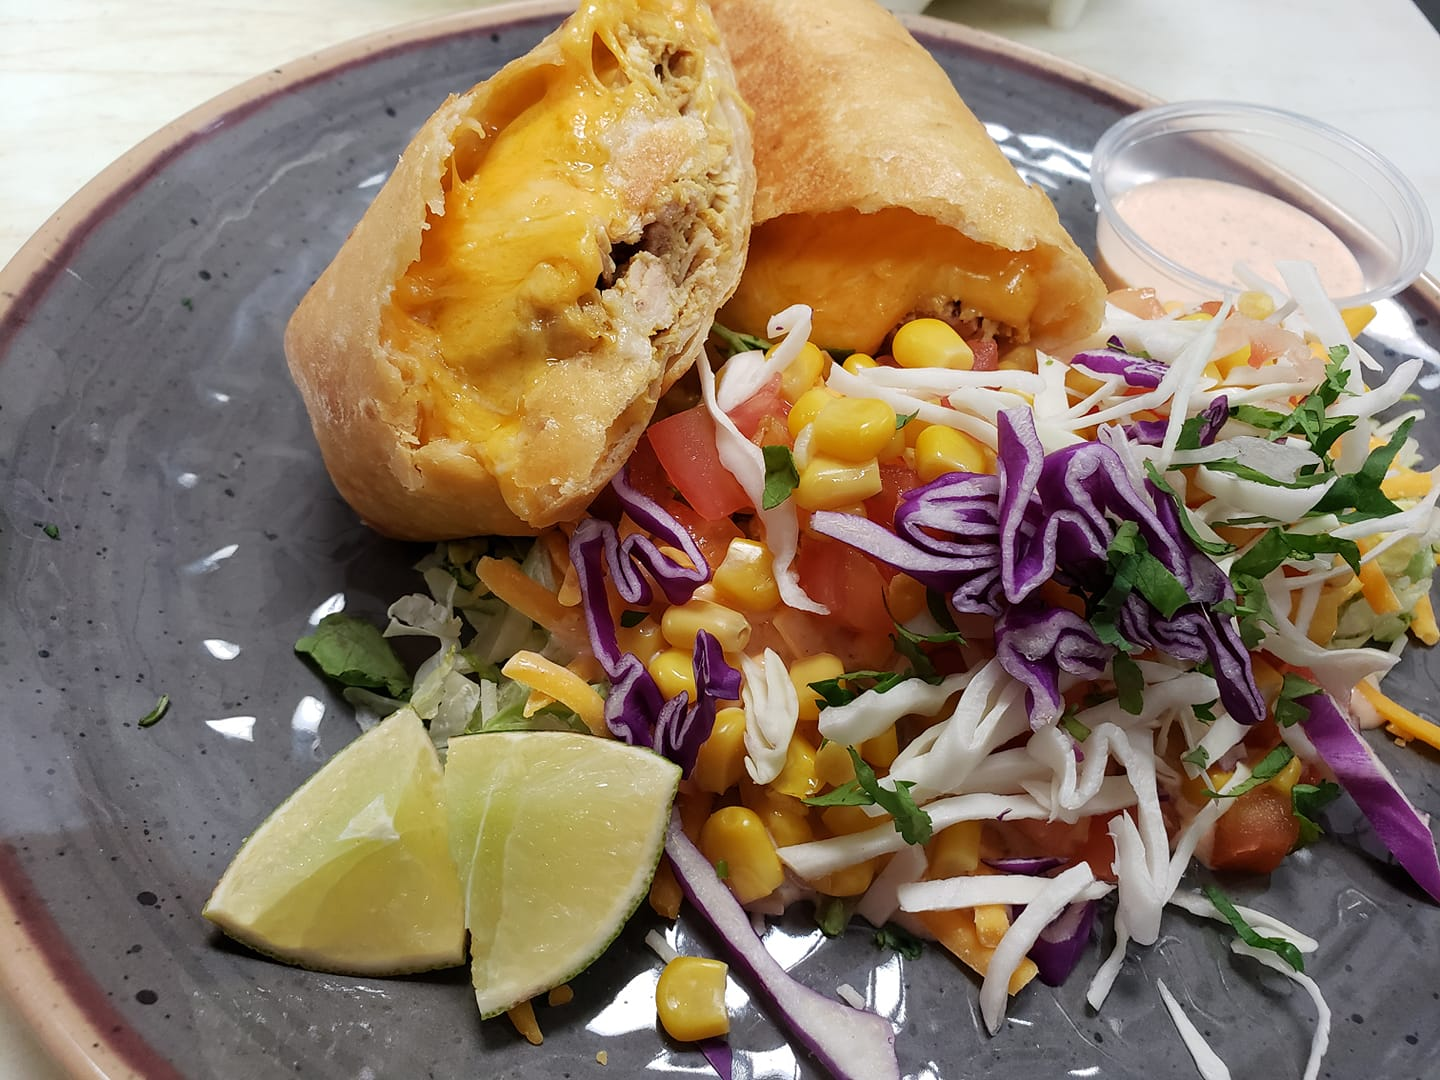 pork and cheese egg rolls served with corn and cabbage slaw